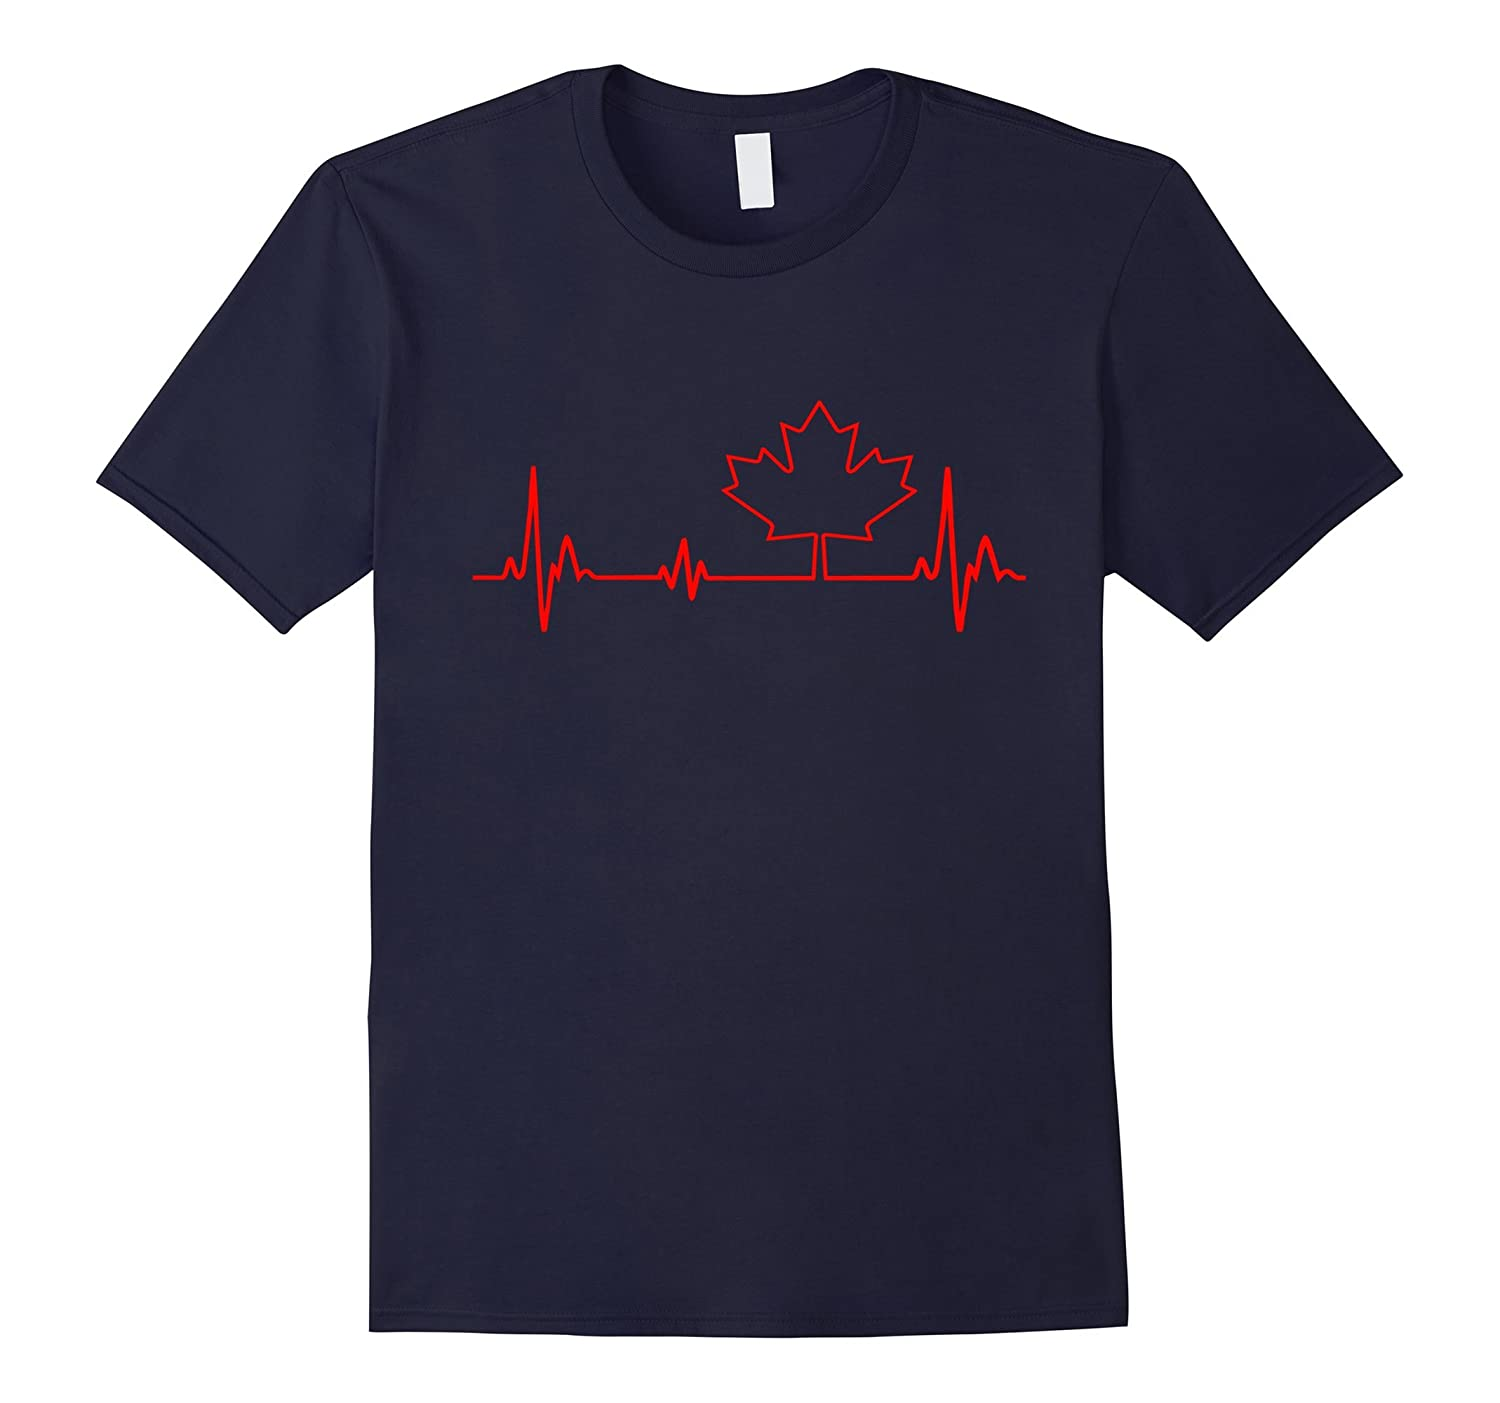 CANADA IN MY HEARTBEAT - CANADA T-SHIRT GIFT-CL